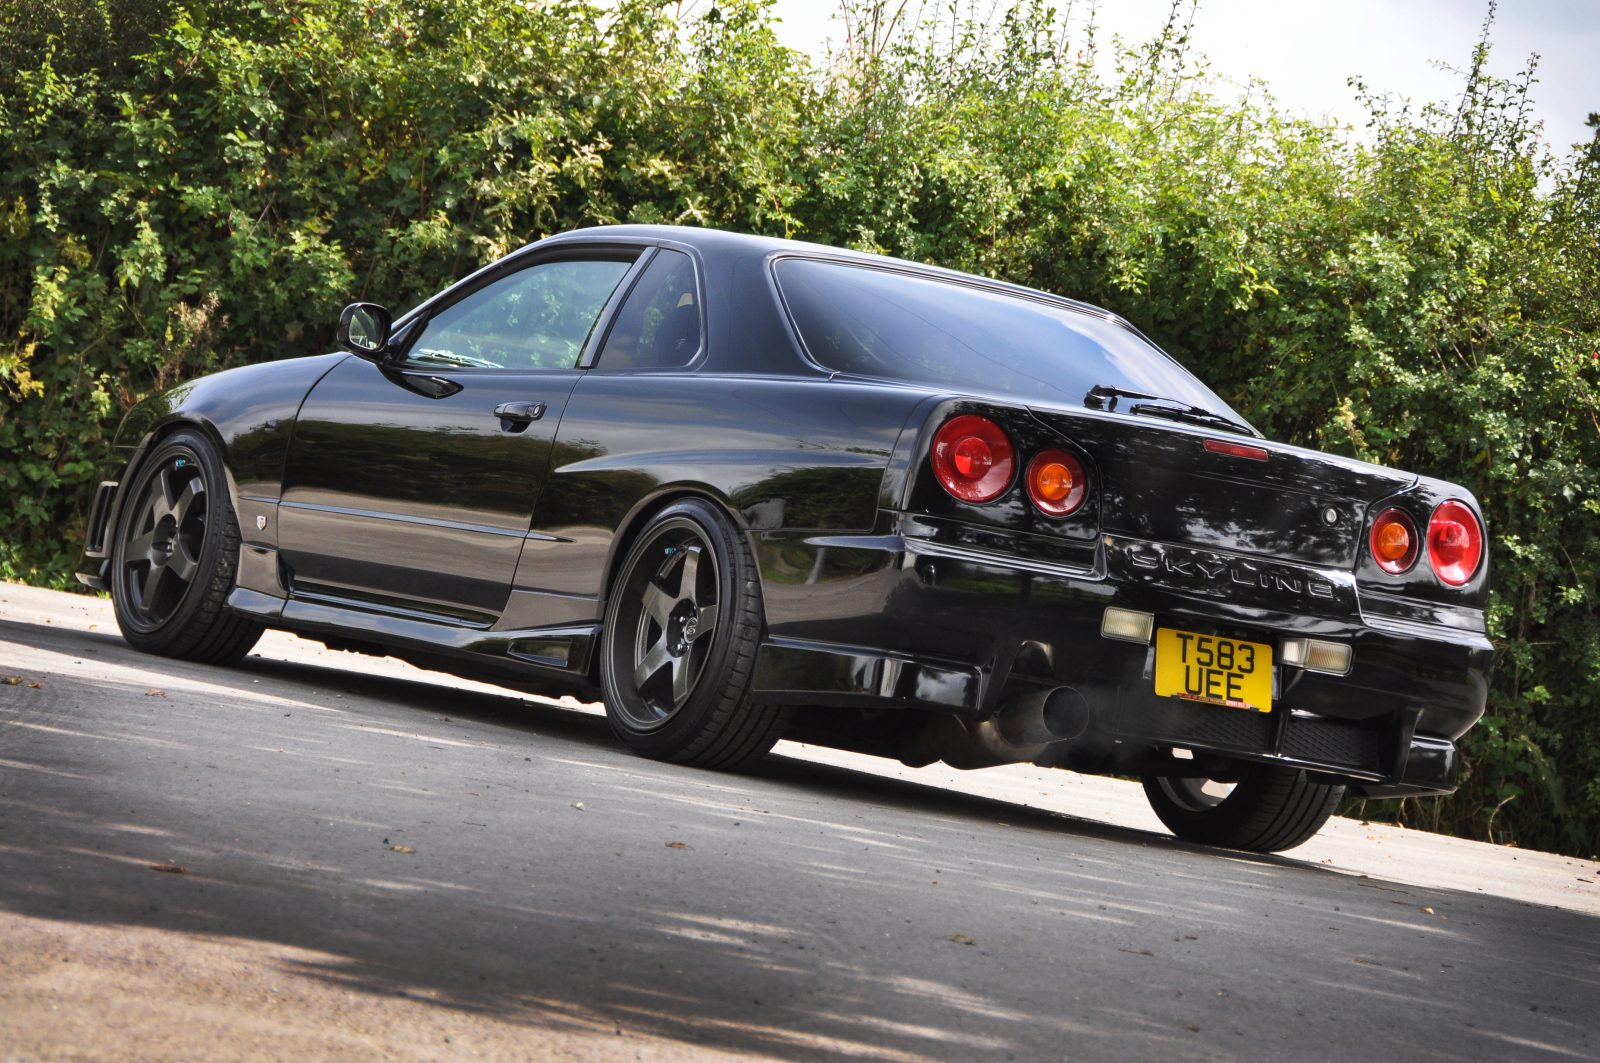 nissan skyline r34 gtt jap imports uk. Black Bedroom Furniture Sets. Home Design Ideas